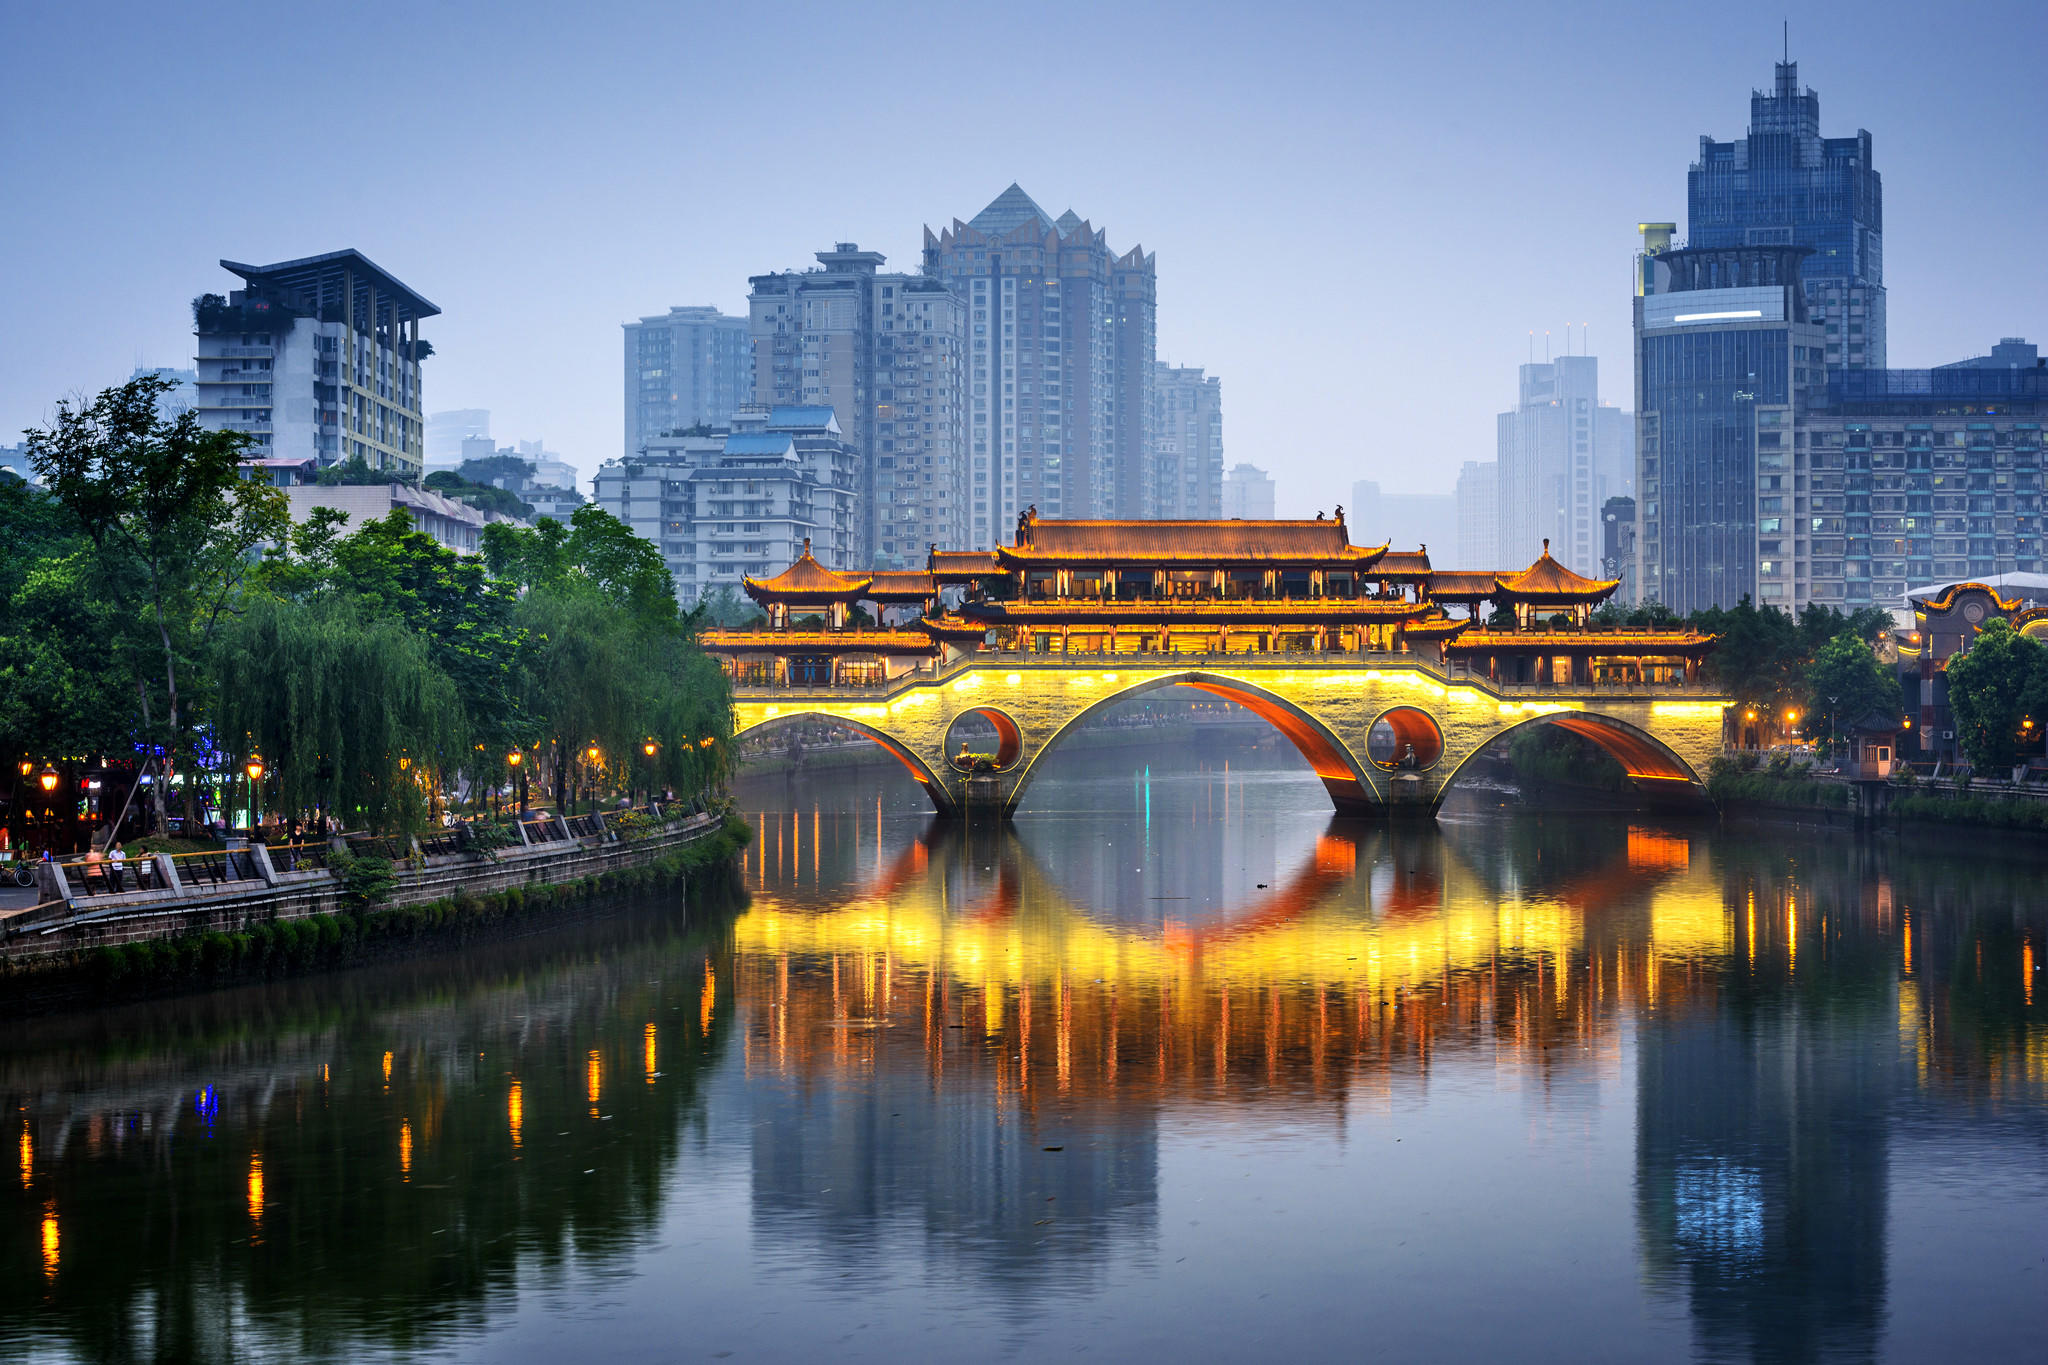 The Anshun Bridge in Chengdu, Sichuan, is seen in China. (Sean Pavone / Getty Images/iStockphoto)